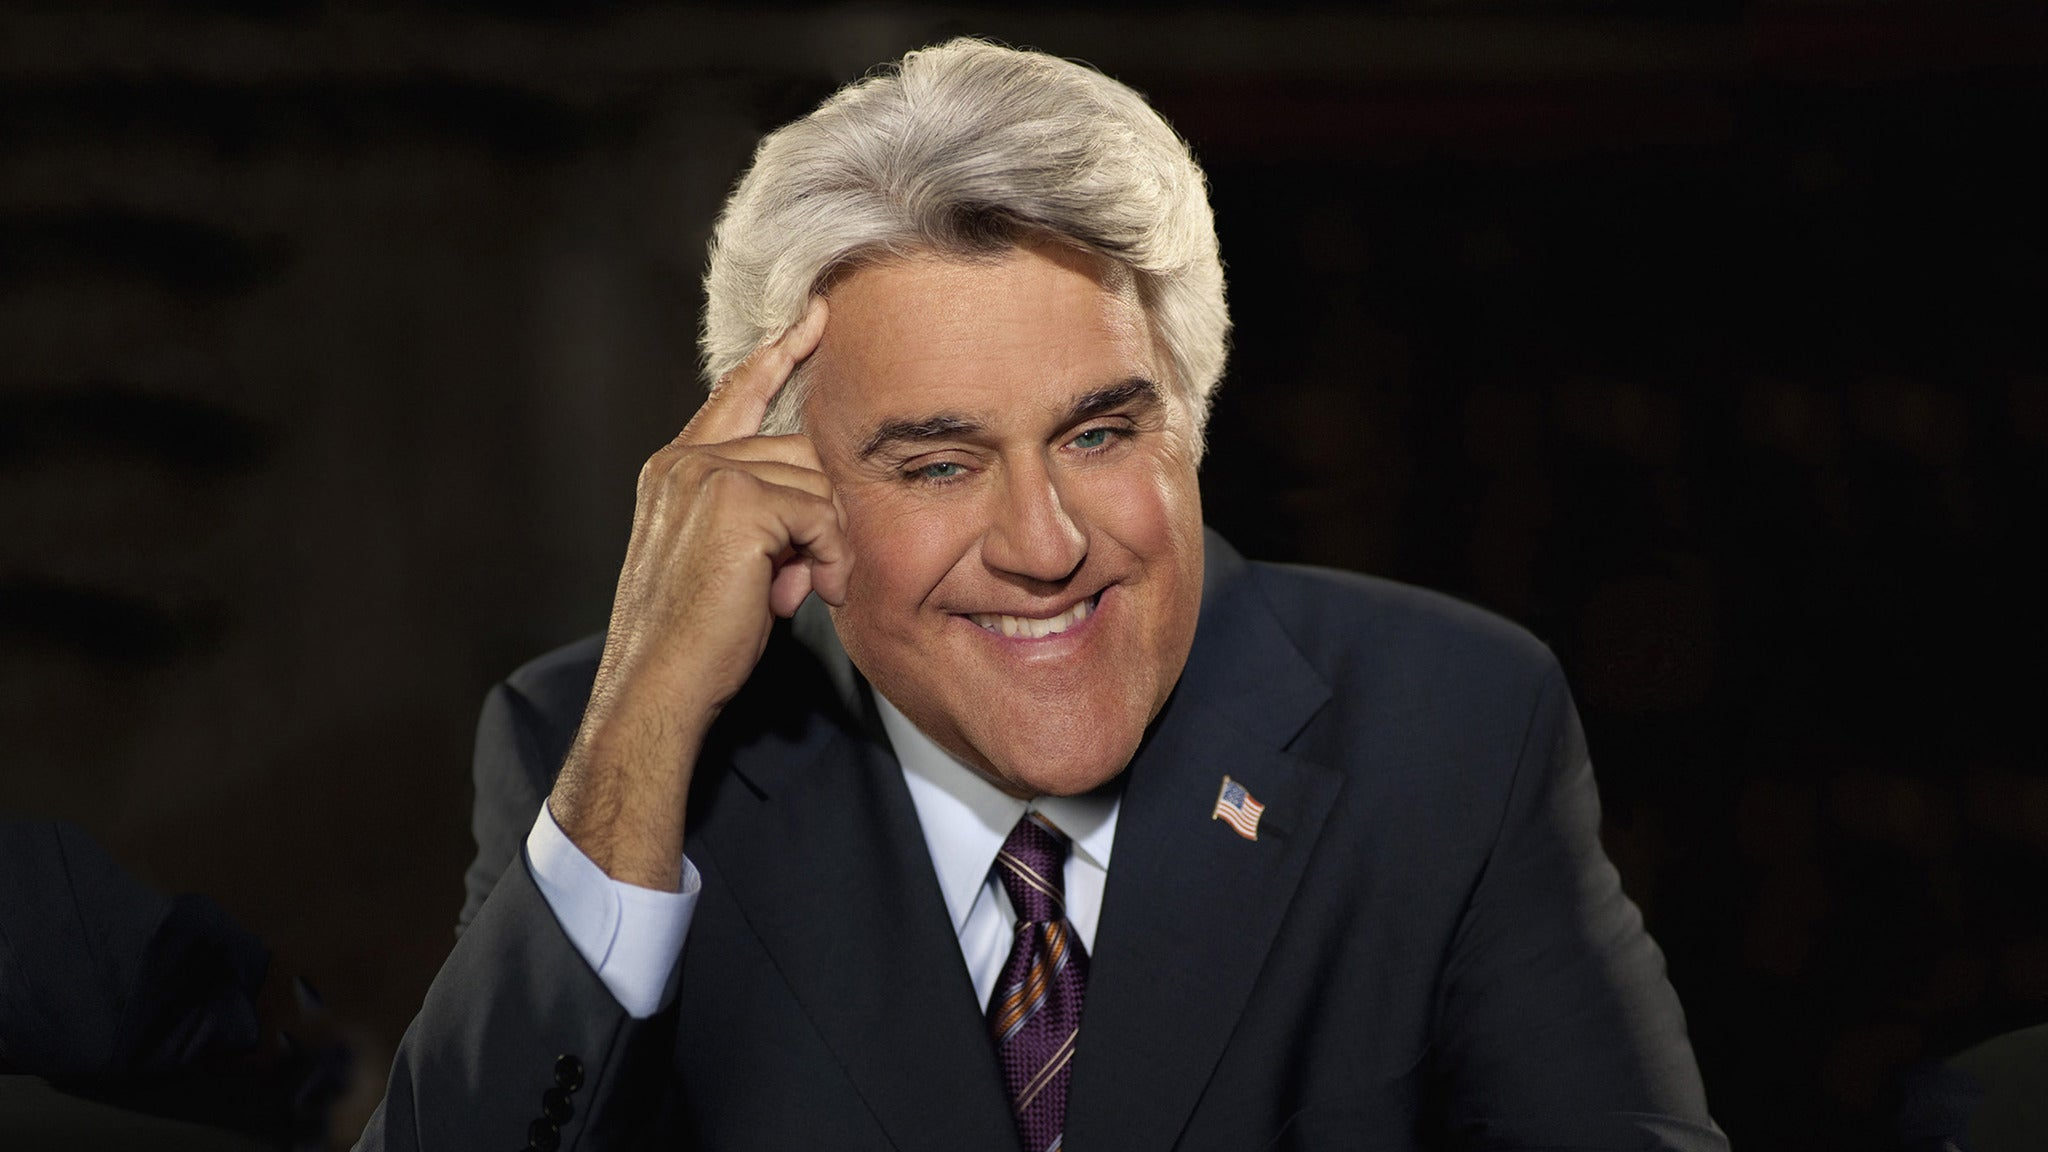 Civic Arts Plaza presents JAY LENO